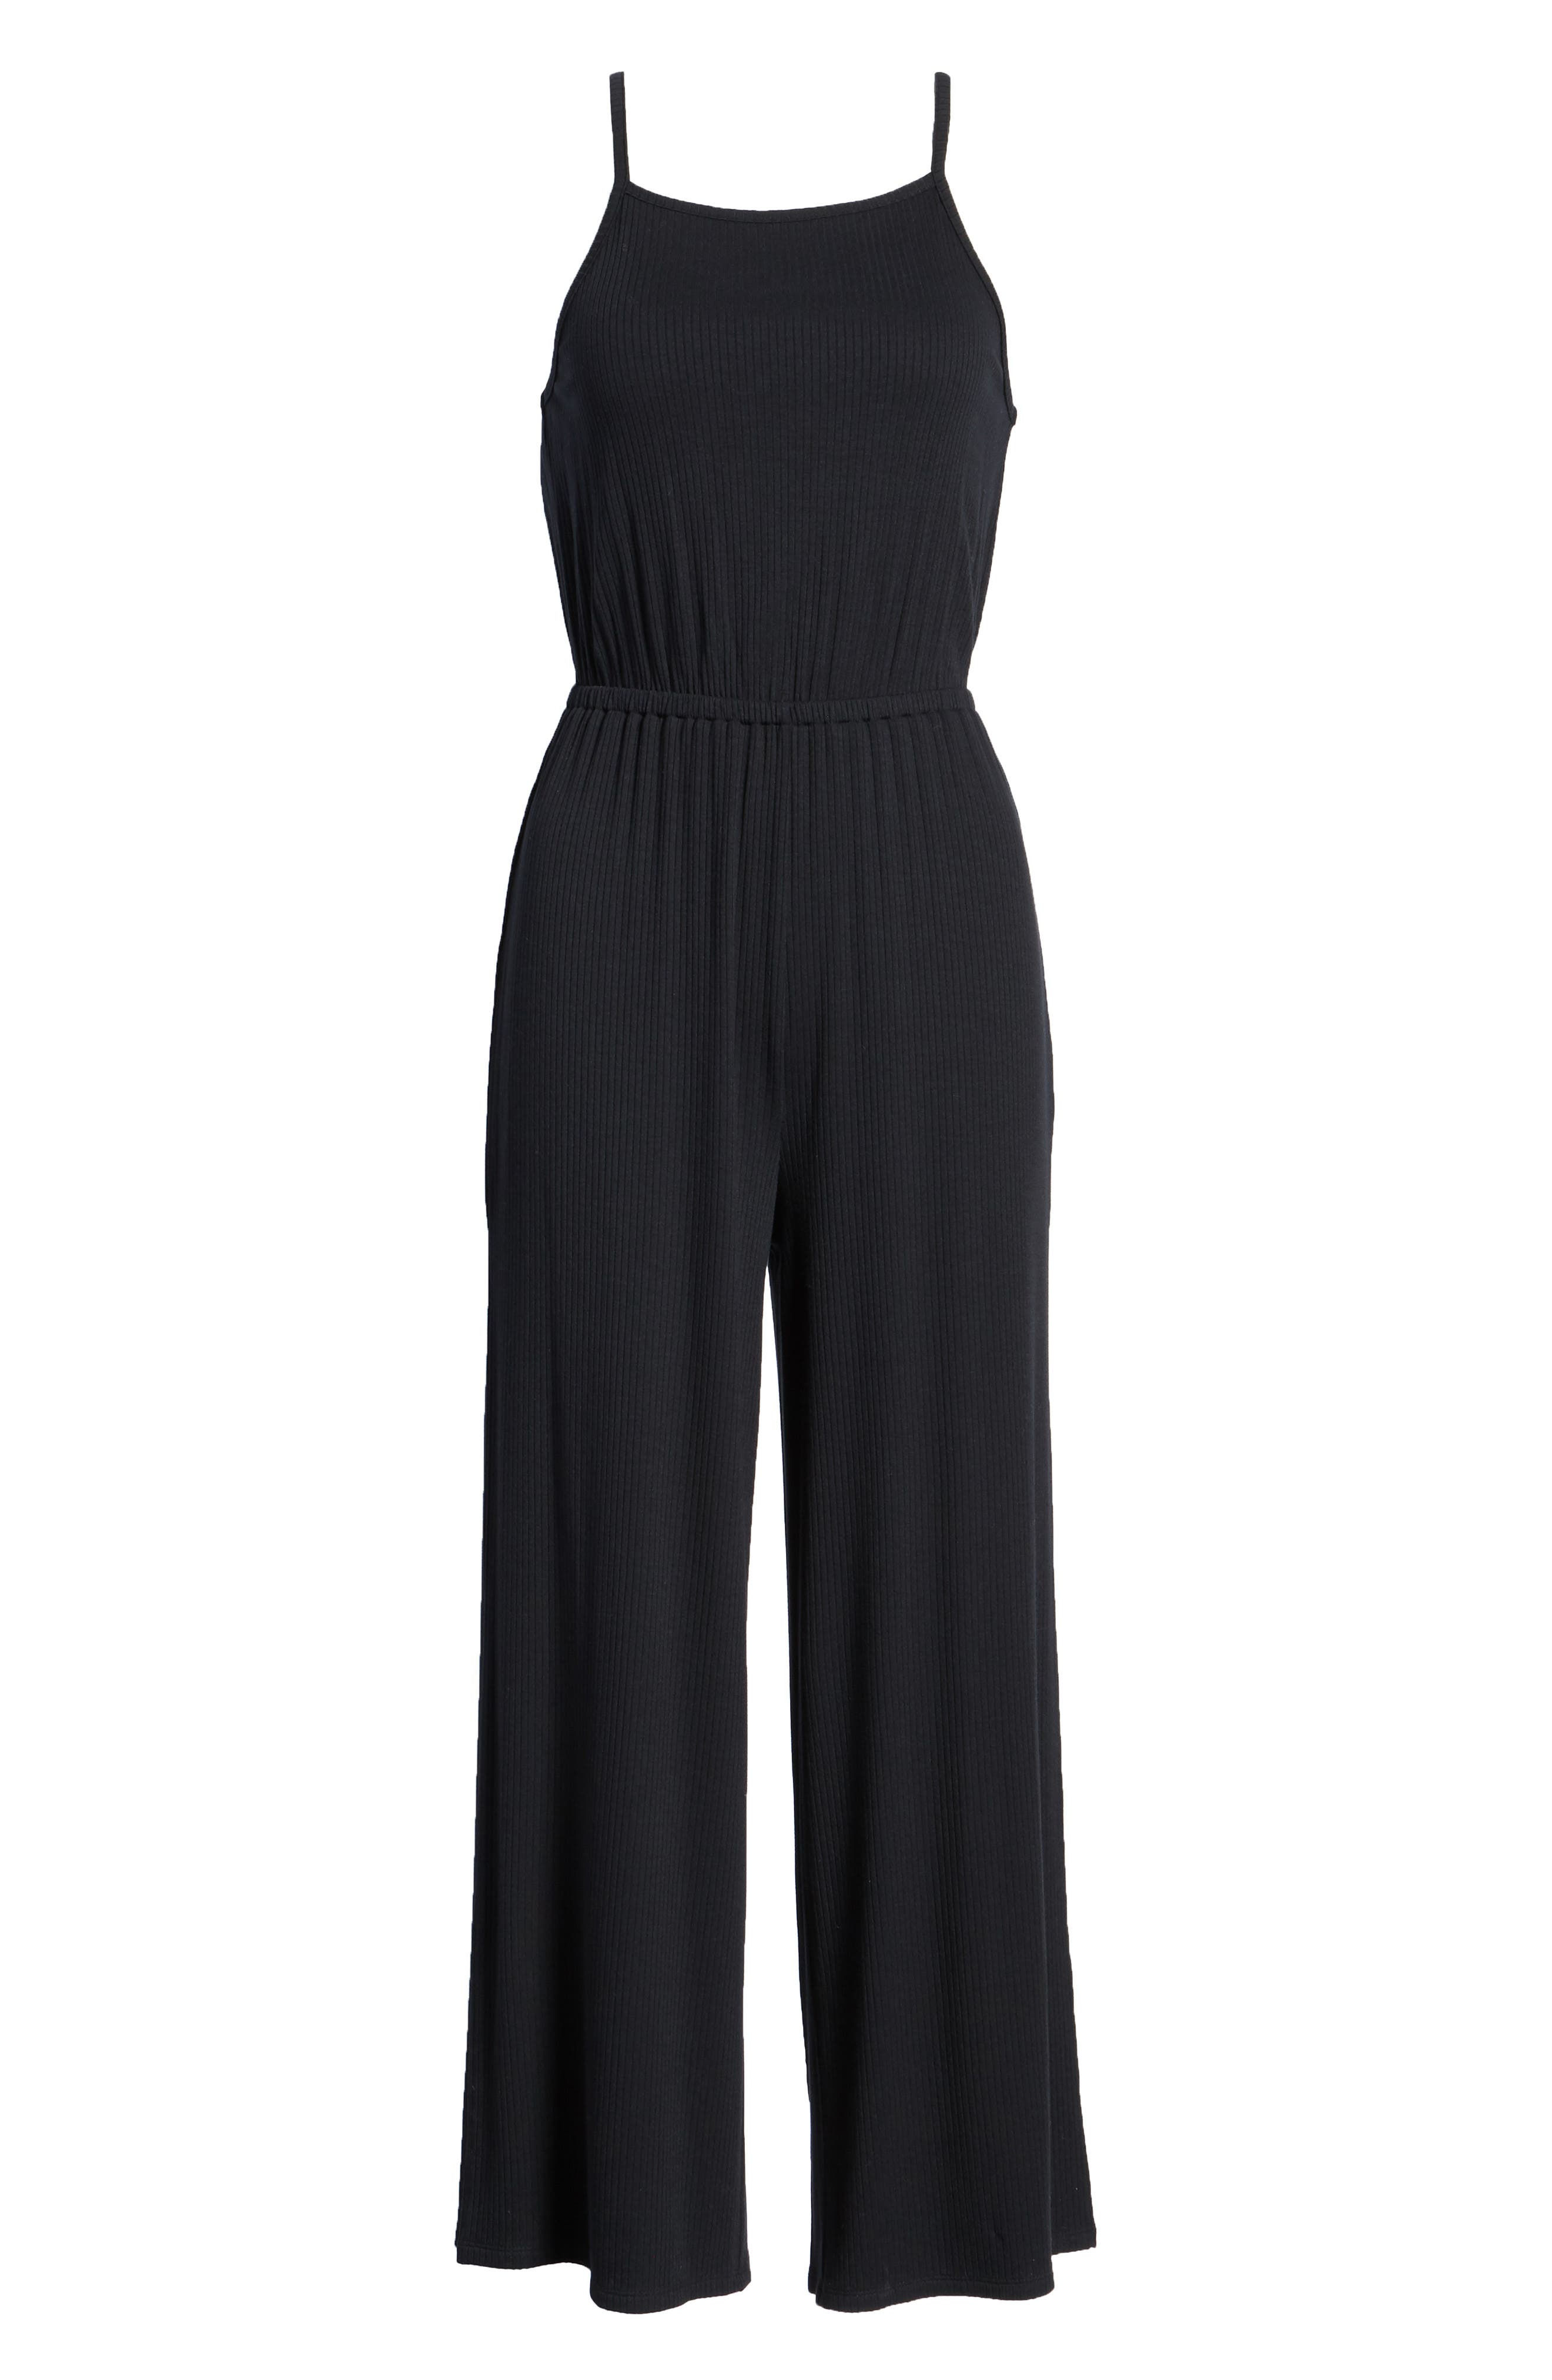 Macall Rib Knit Wide Leg Jumpsuit,                             Alternate thumbnail 7, color,                             Black